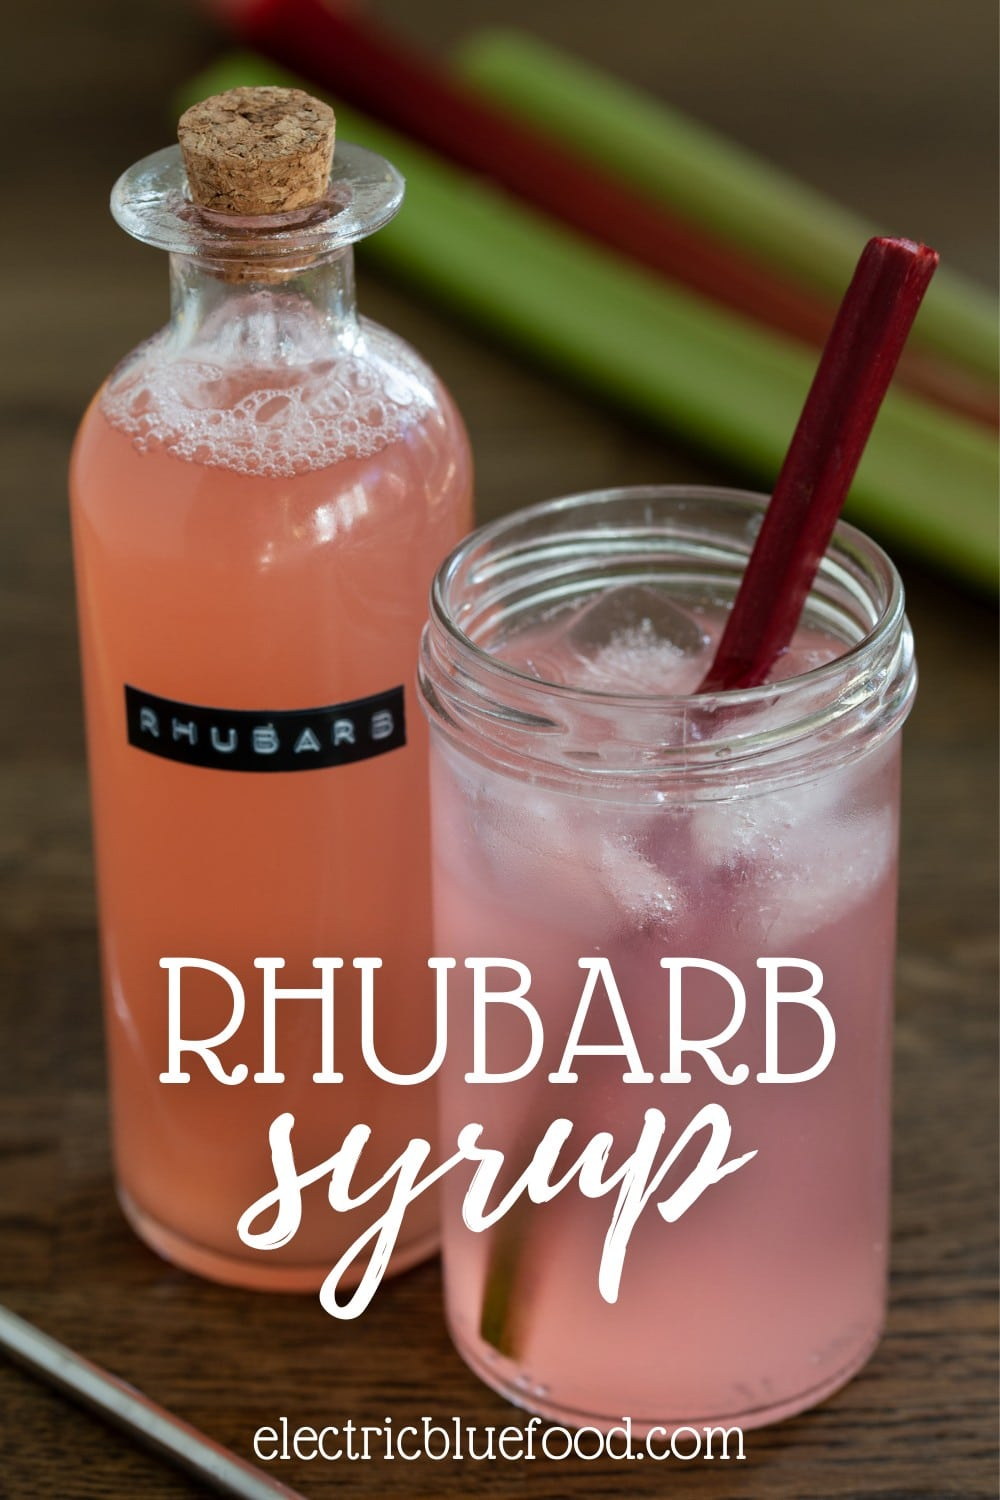 Simple rhubarb syrup recipe to use on dessert or as a cocktail ingredient.